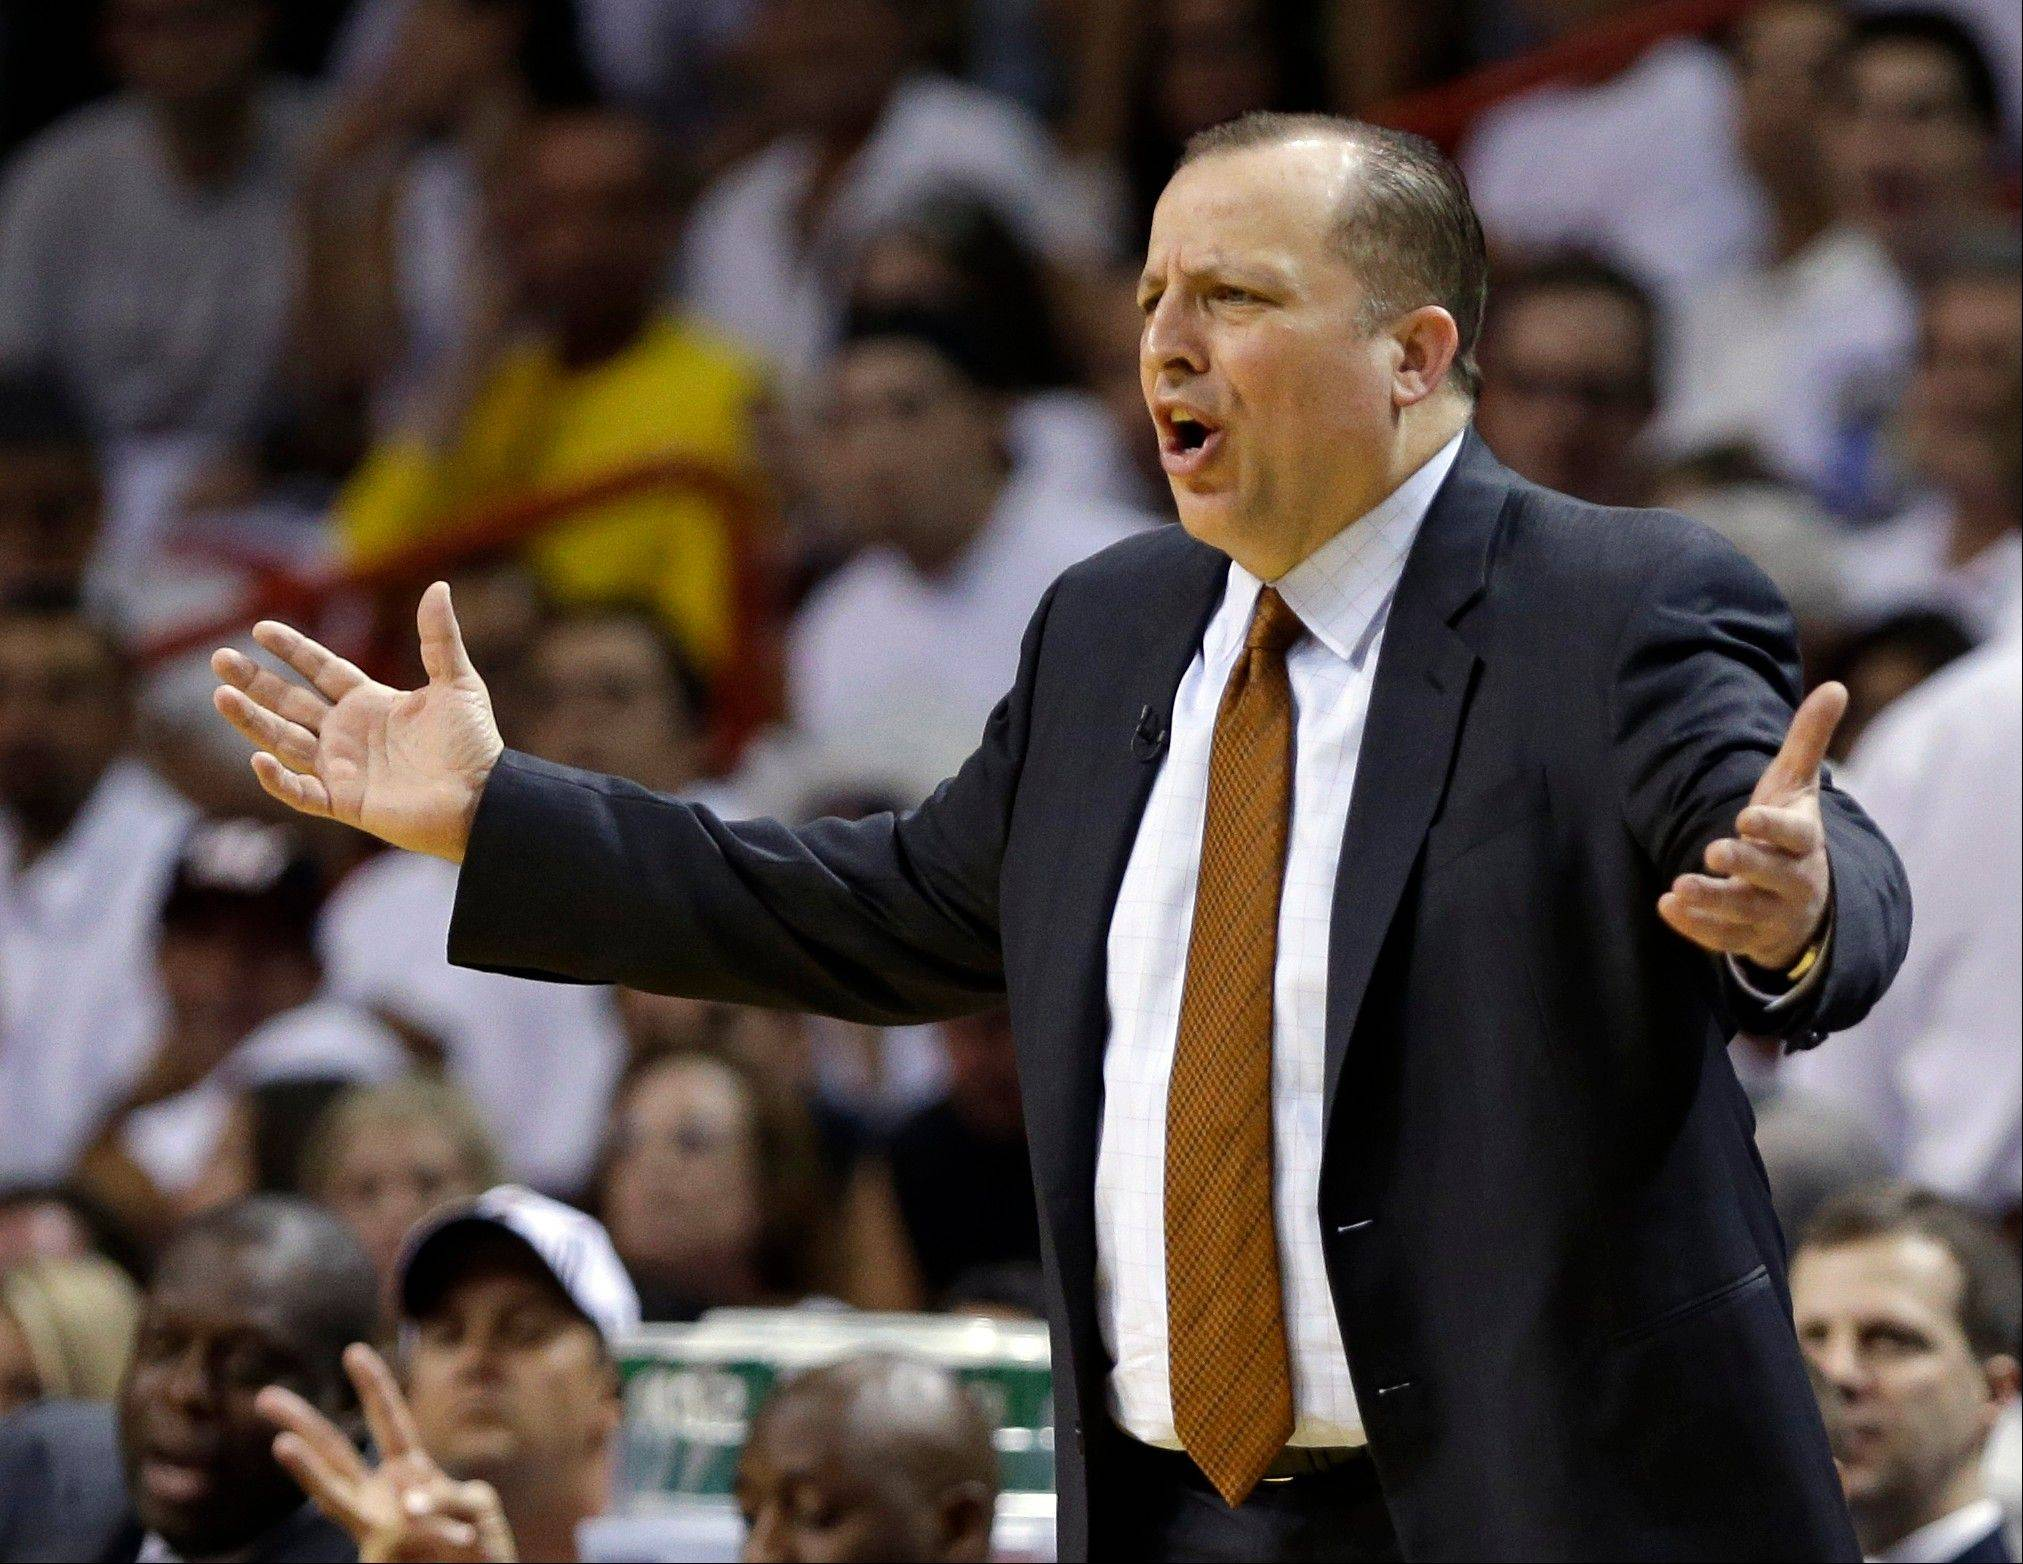 Chicago Bulls head coach Tom Thibodeau reacts to a call during the first half of Game 1 of the NBA basketball playoff series in the Eastern Conference semifinals against the Miami Heat, Monday, May 6, 2013 in Miami.